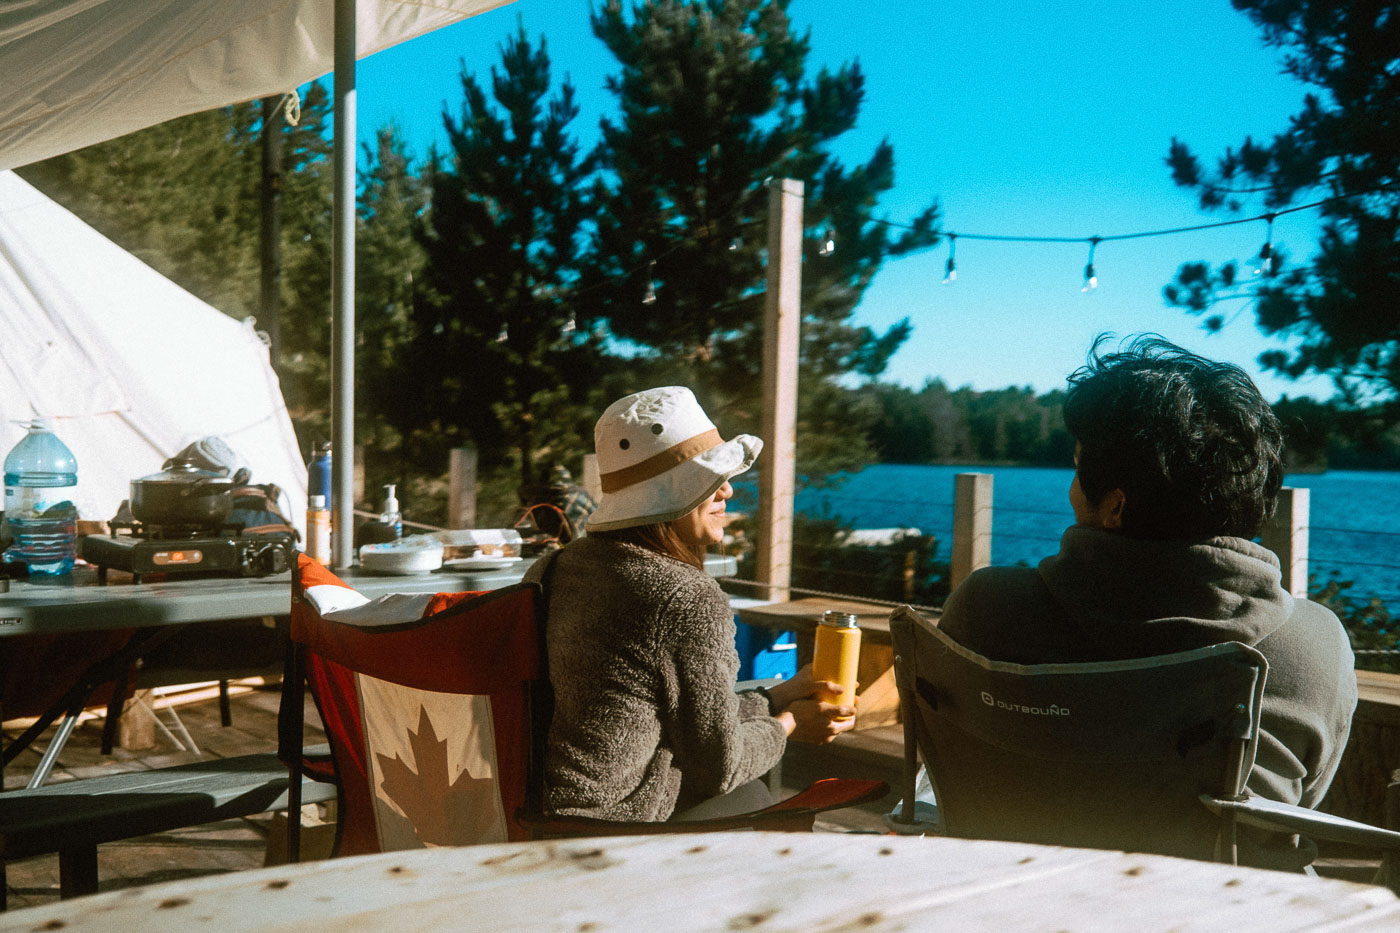 Man and Woman enjoying the glamping tent's private deck at Pine Falls Lodge